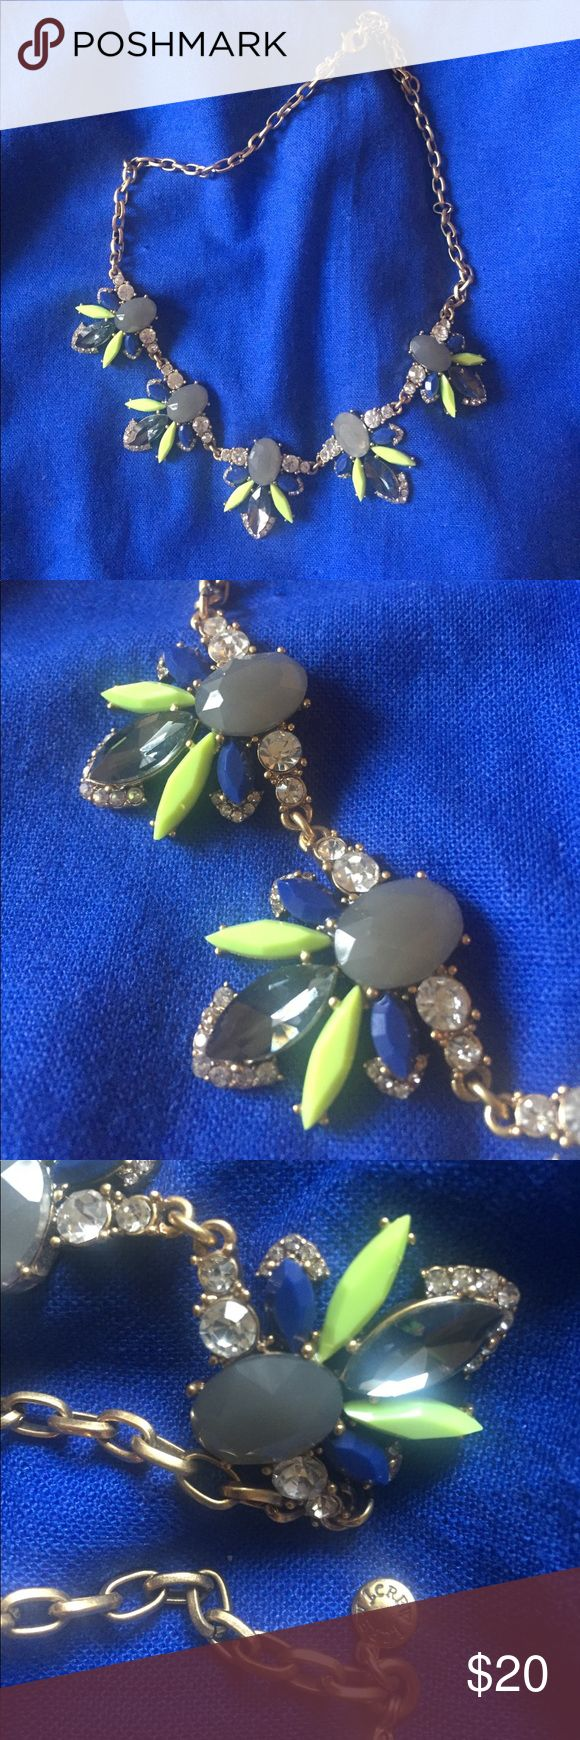 J Crew Necklace Gold, blue, grey and green J Crew necklace J. Crew Jewelry Necklaces